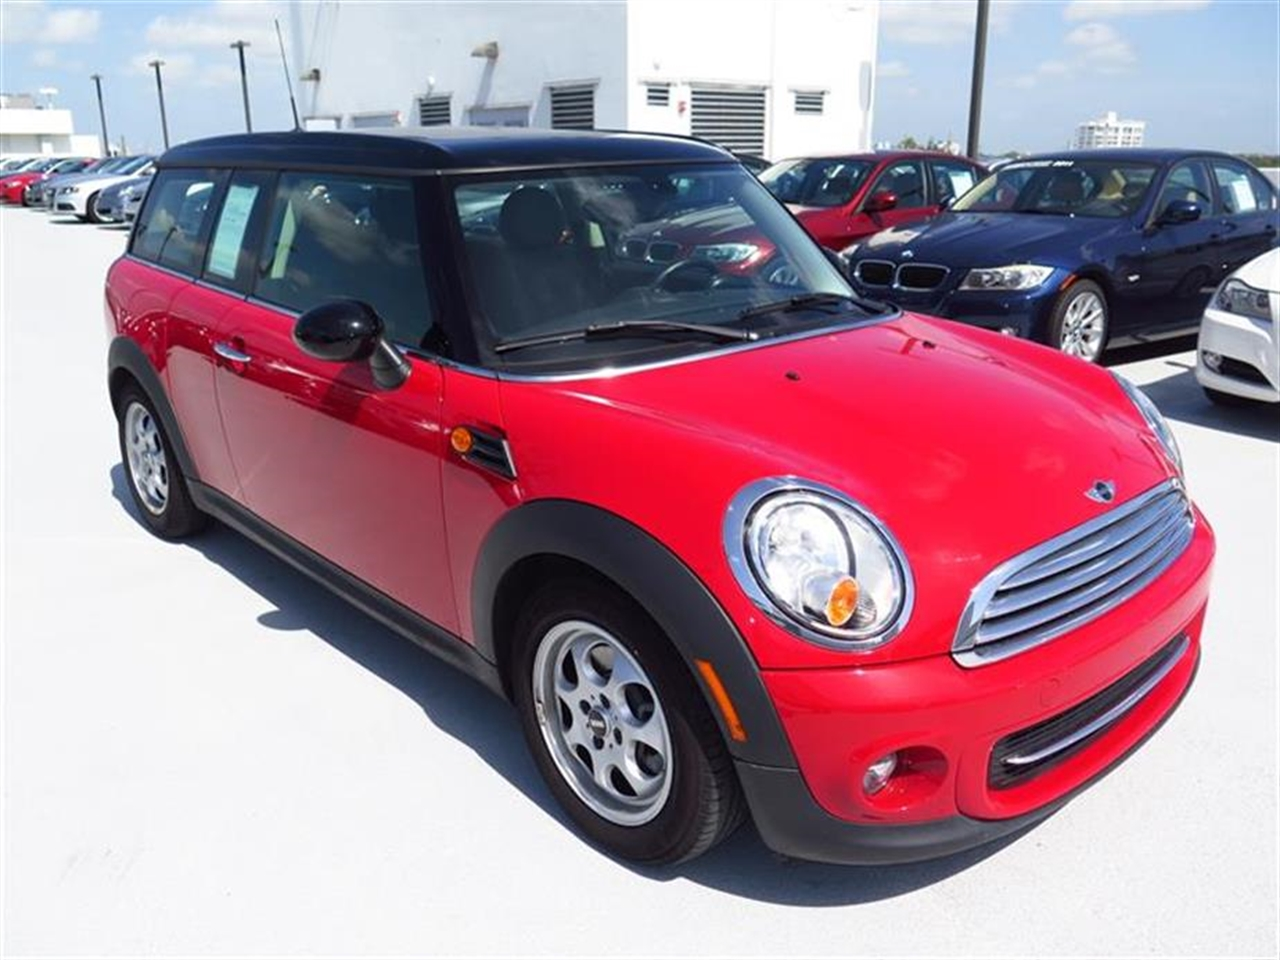 2013 MINI COOPER CLUBMAN 2dr Cpe 15294 miles 1 rear cup holder 2 12V pwr outlets 5050 split